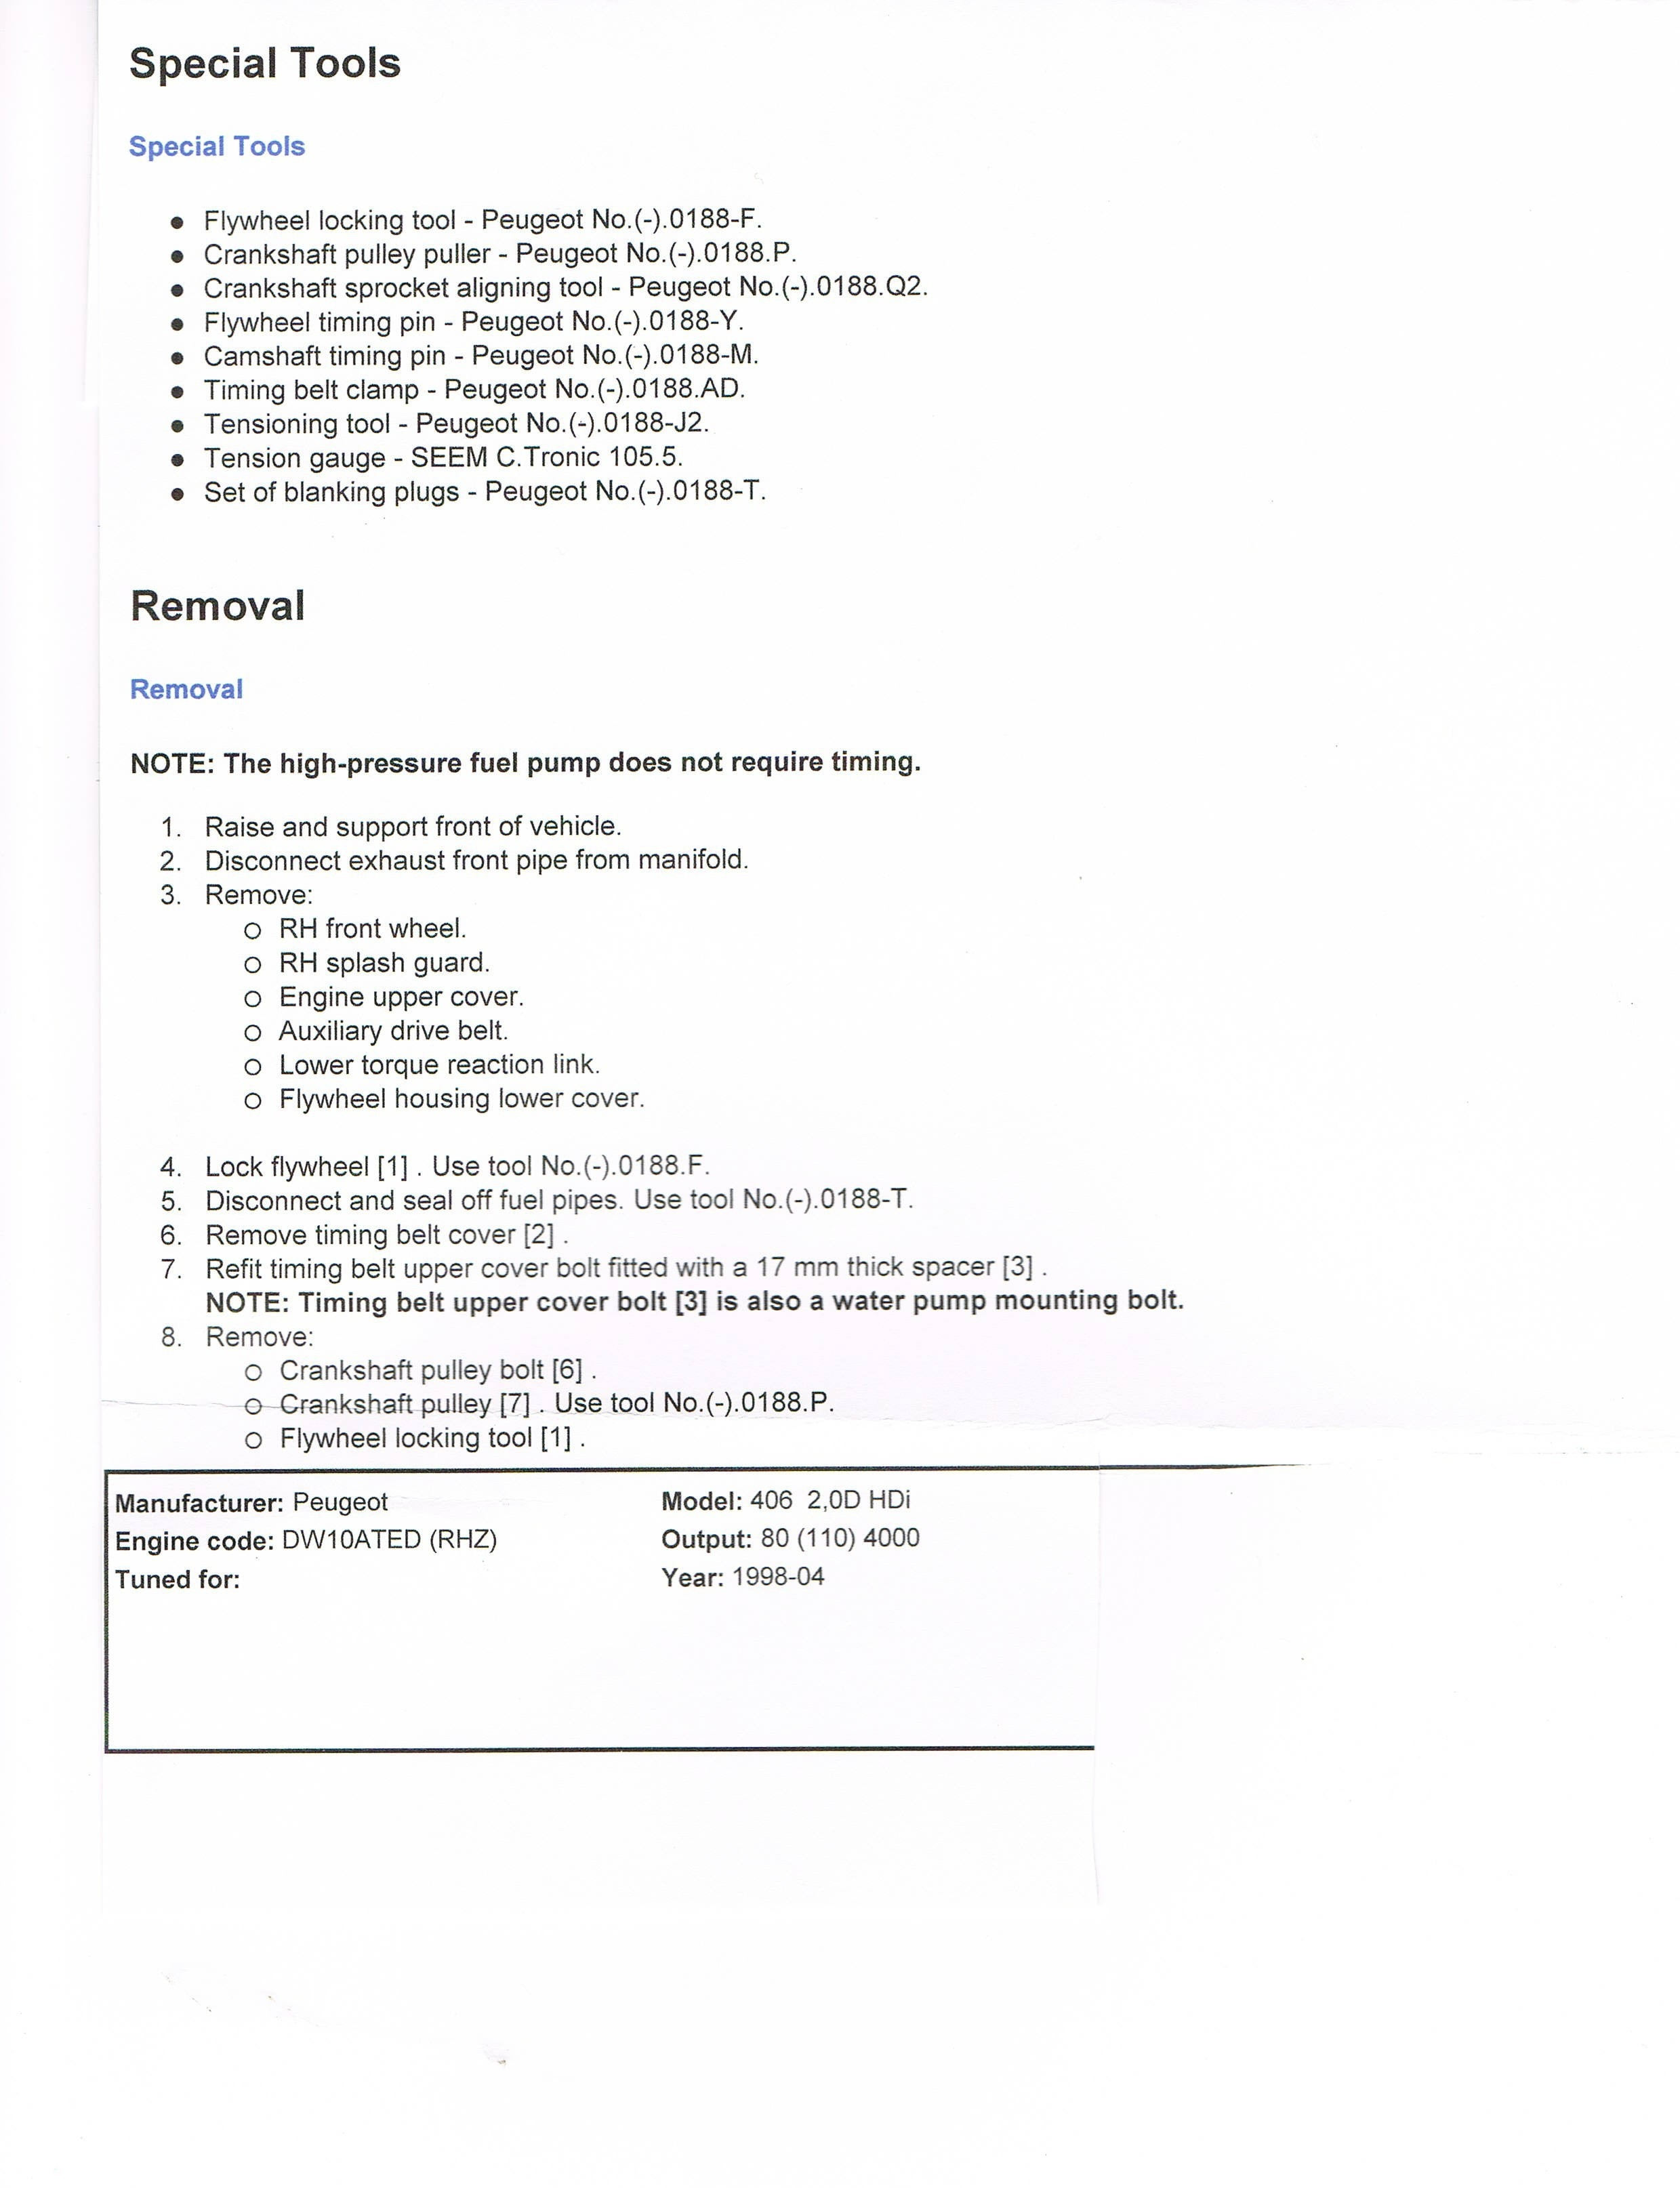 Actor Resume Template - Employee Verification Letter New Cfo Resume Template Inspirational